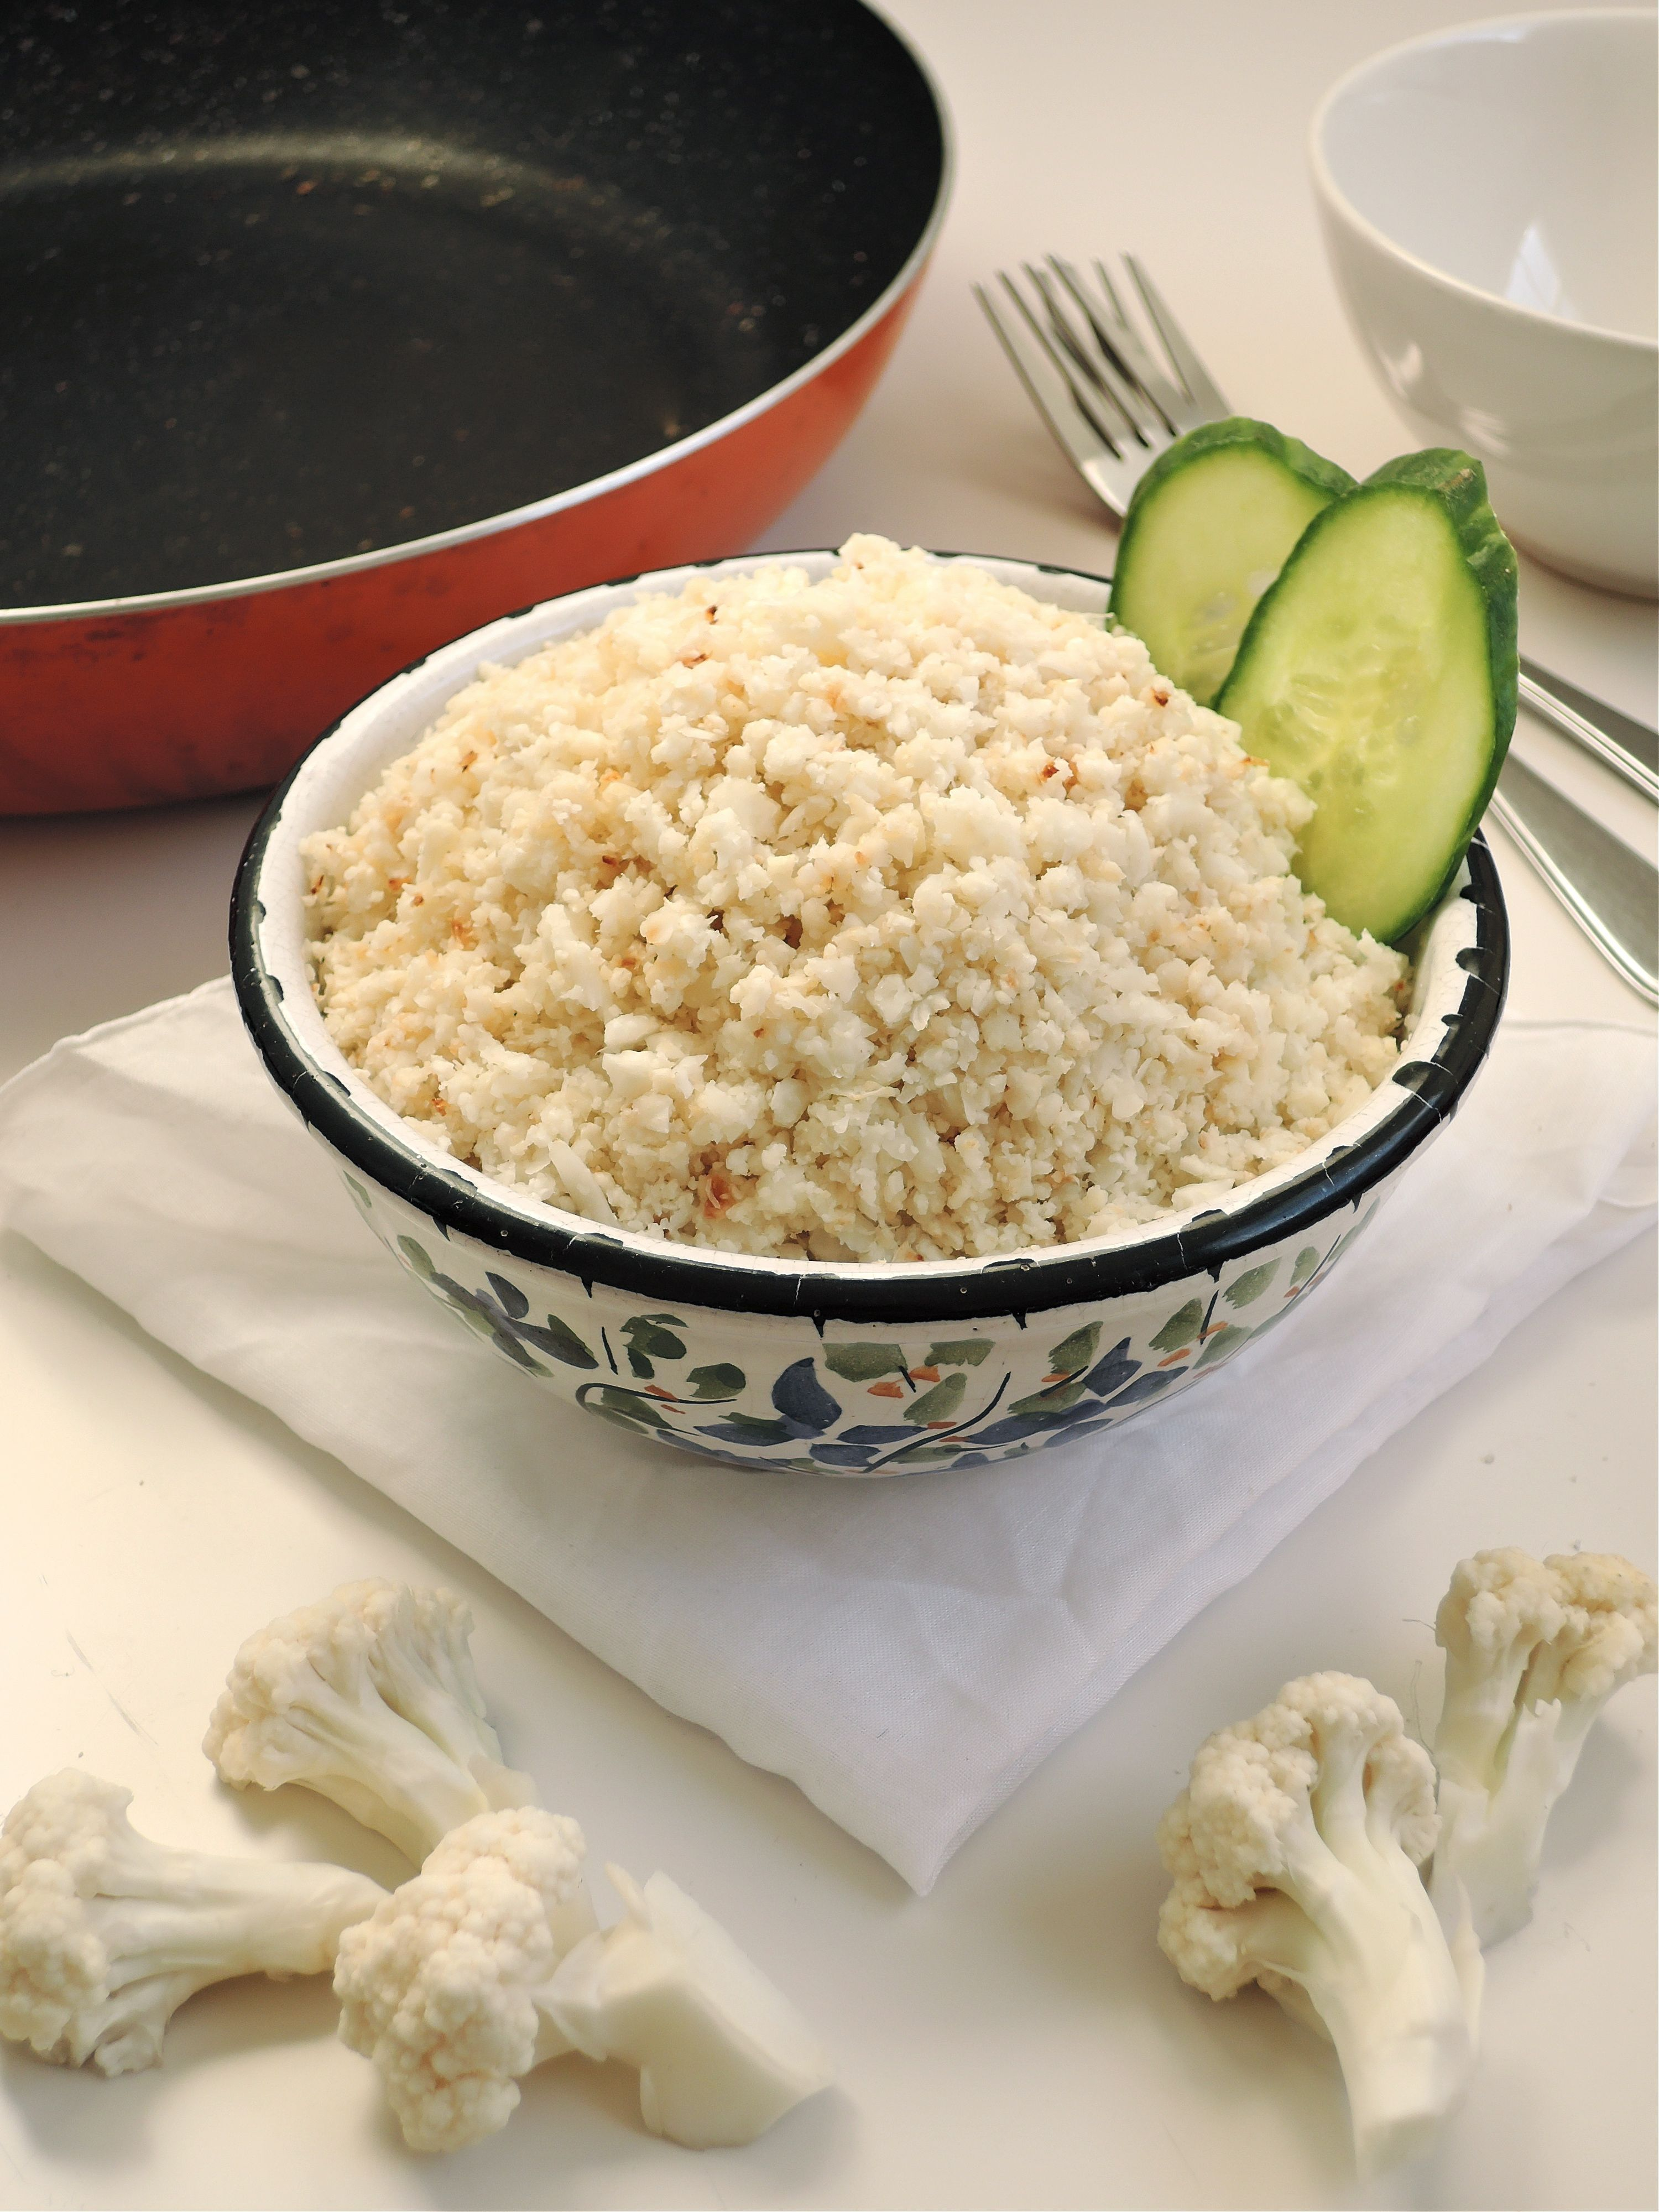 How to make cauliflower rice with a grater or blender add a how to make cauliflower rice without a food processor my food processor is strictly used for my homemade laundry detergent now so i had to give this a try forumfinder Image collections